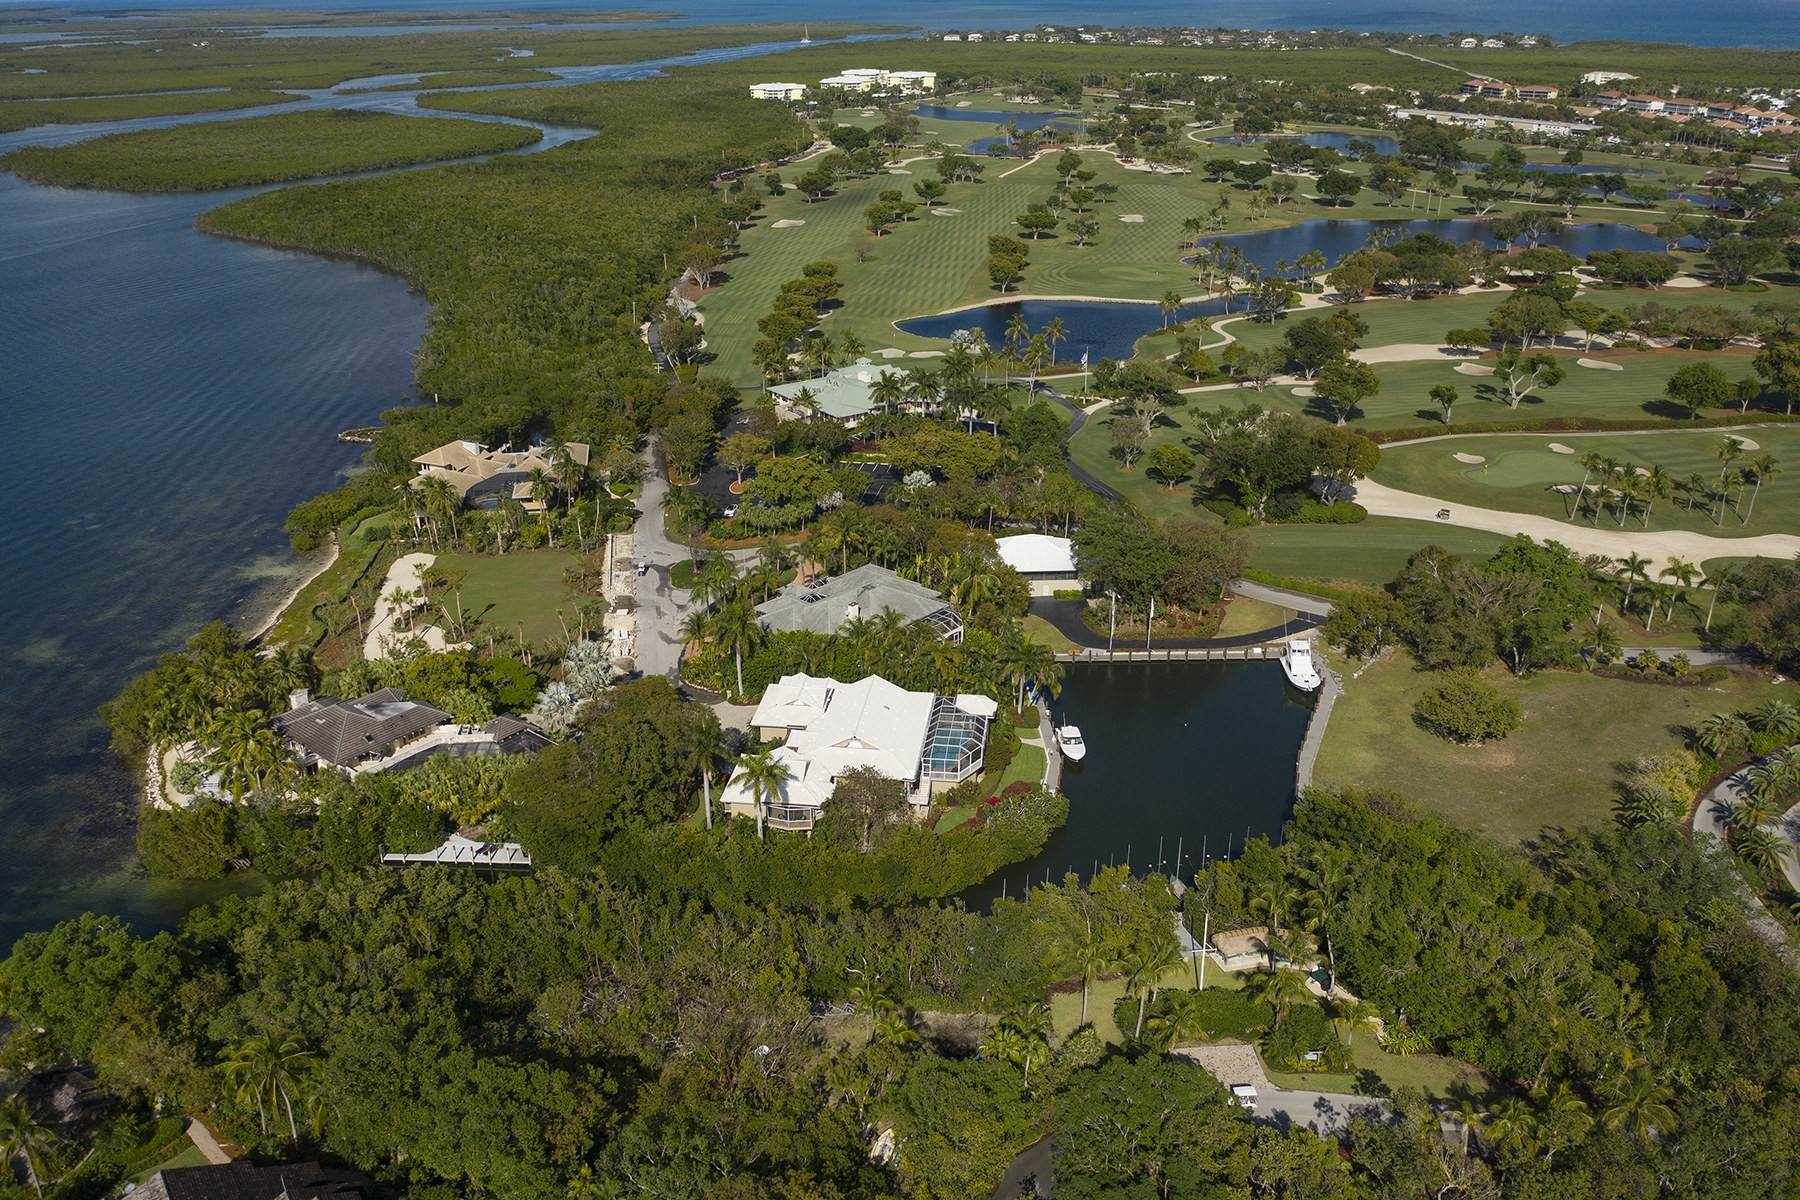 11. Property for Sale at 10 Cannon Point, Key Largo, FL 10 Cannon Point Key Largo, Florida 33037 United States